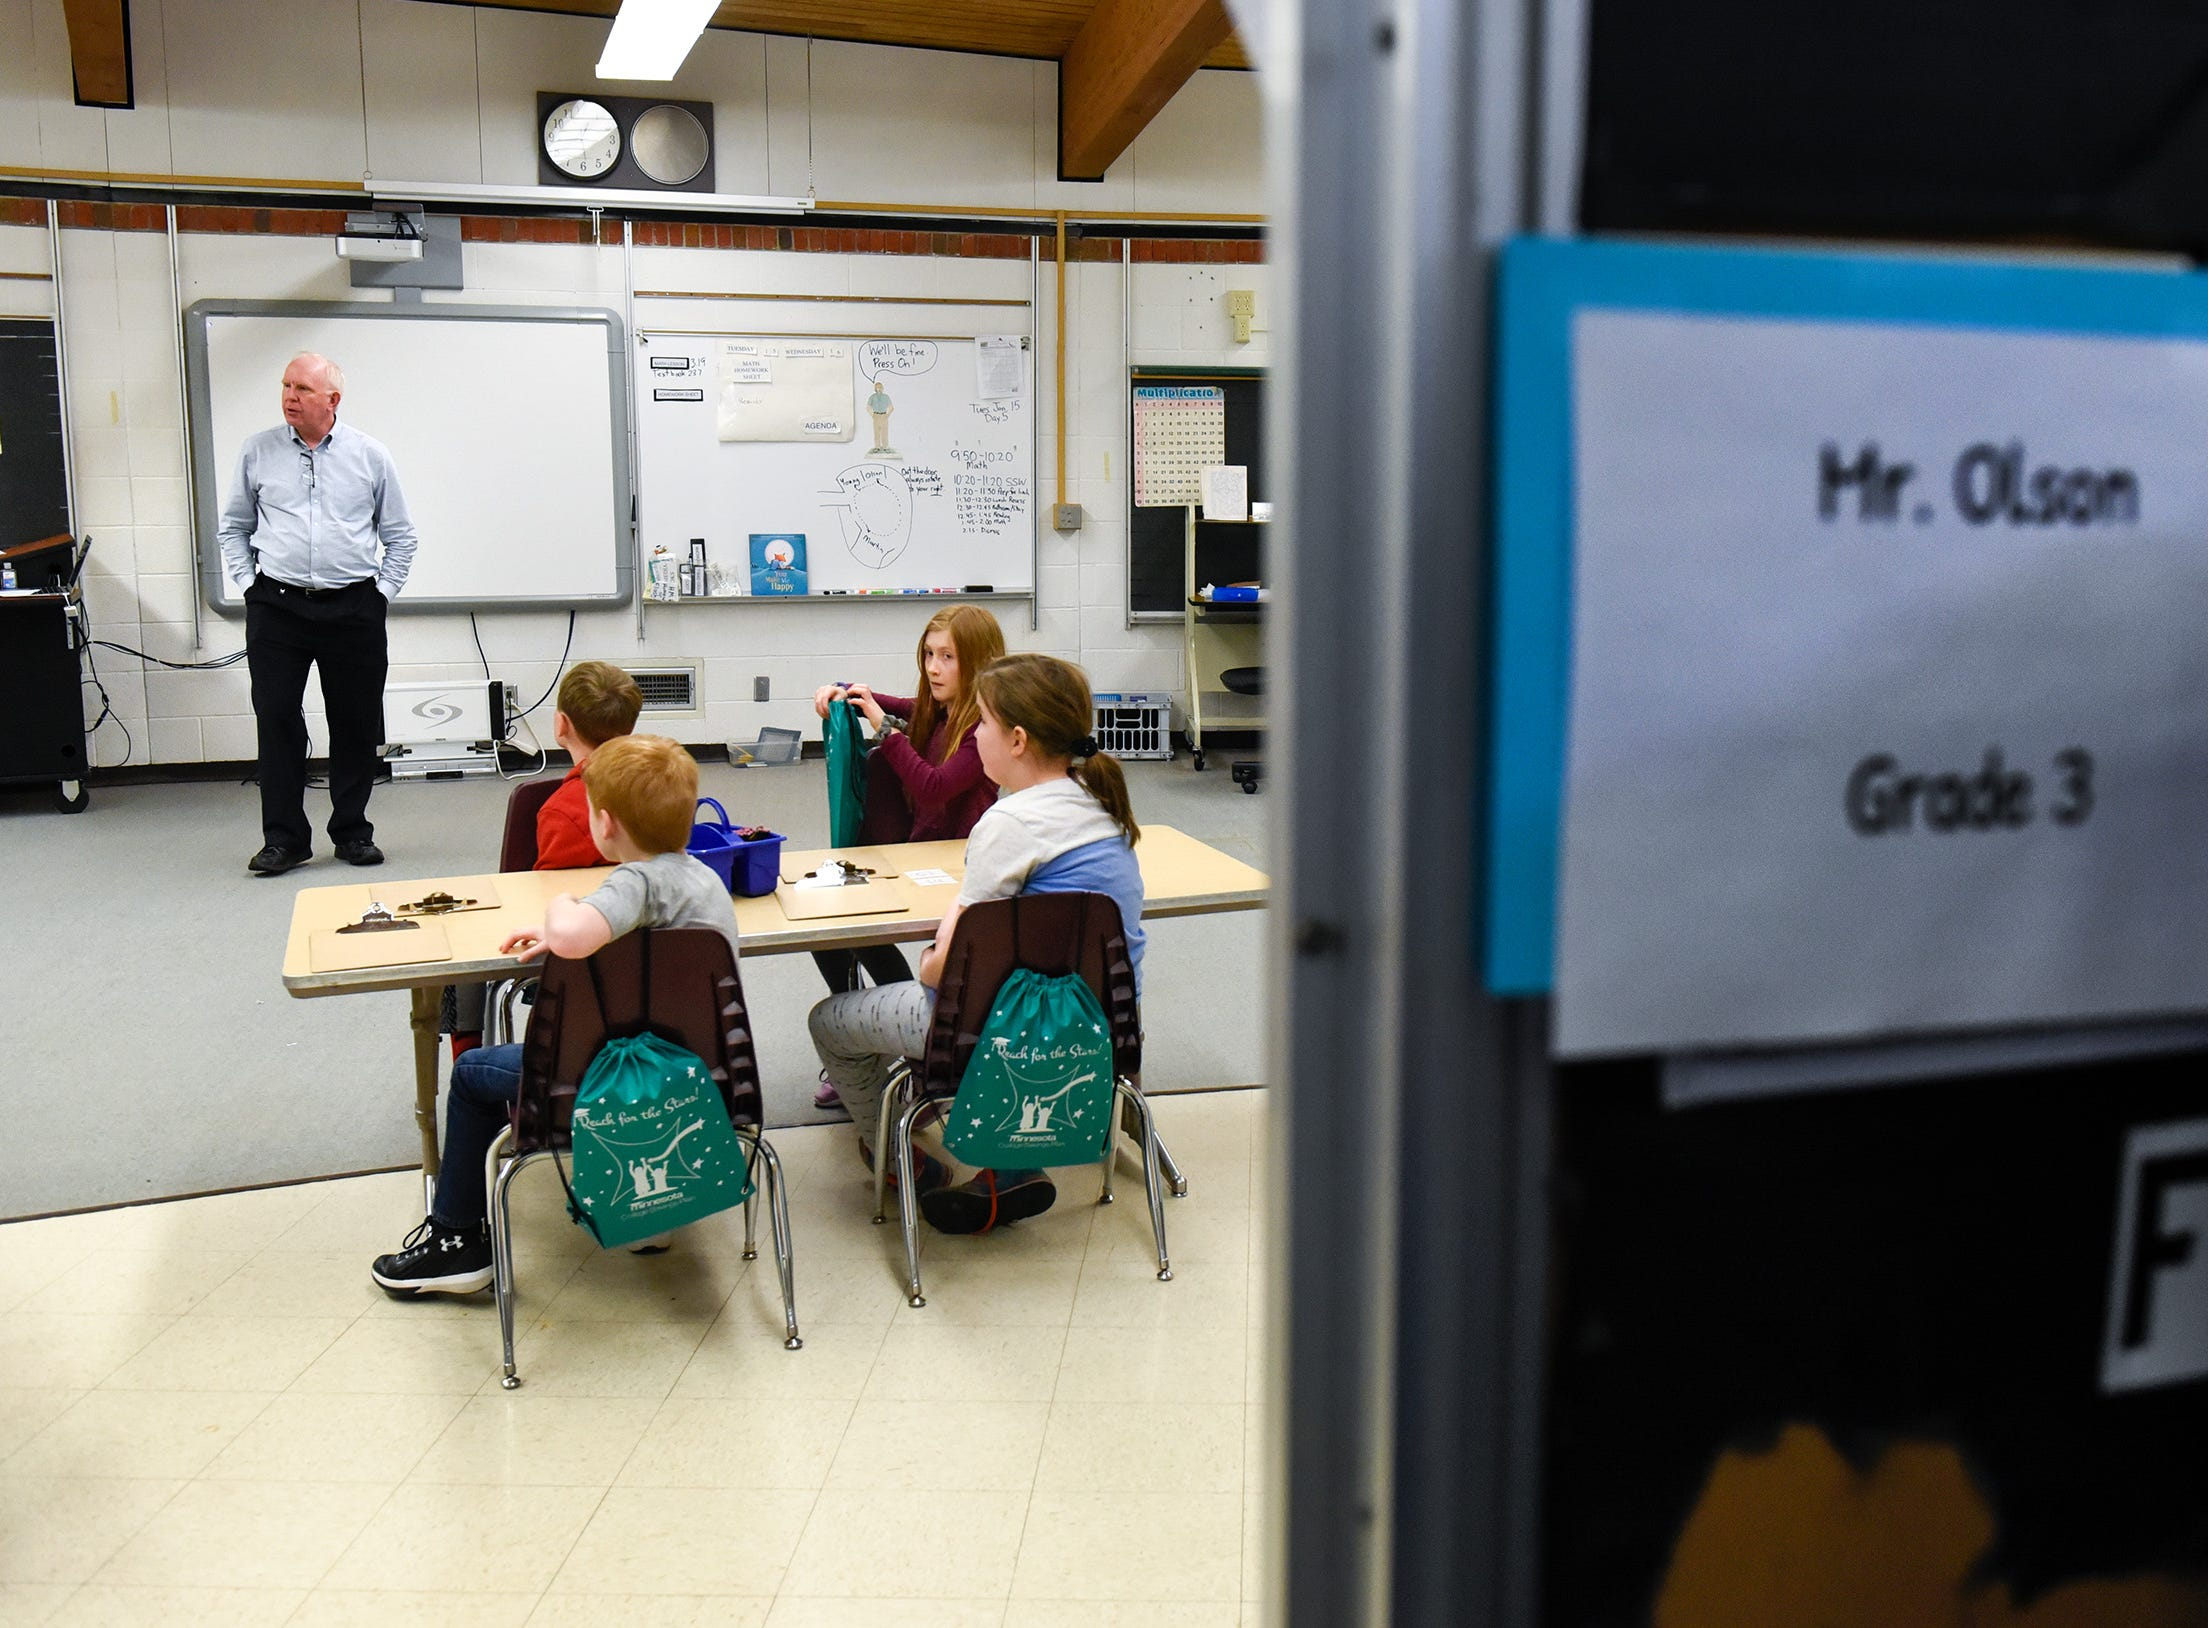 Teacher Brad Olson gets his students settled into their new classroom area Tuesday, Jan. 15, after a fire damaged classrooms at Pleasantview Elementary School in Sauk Rapids.